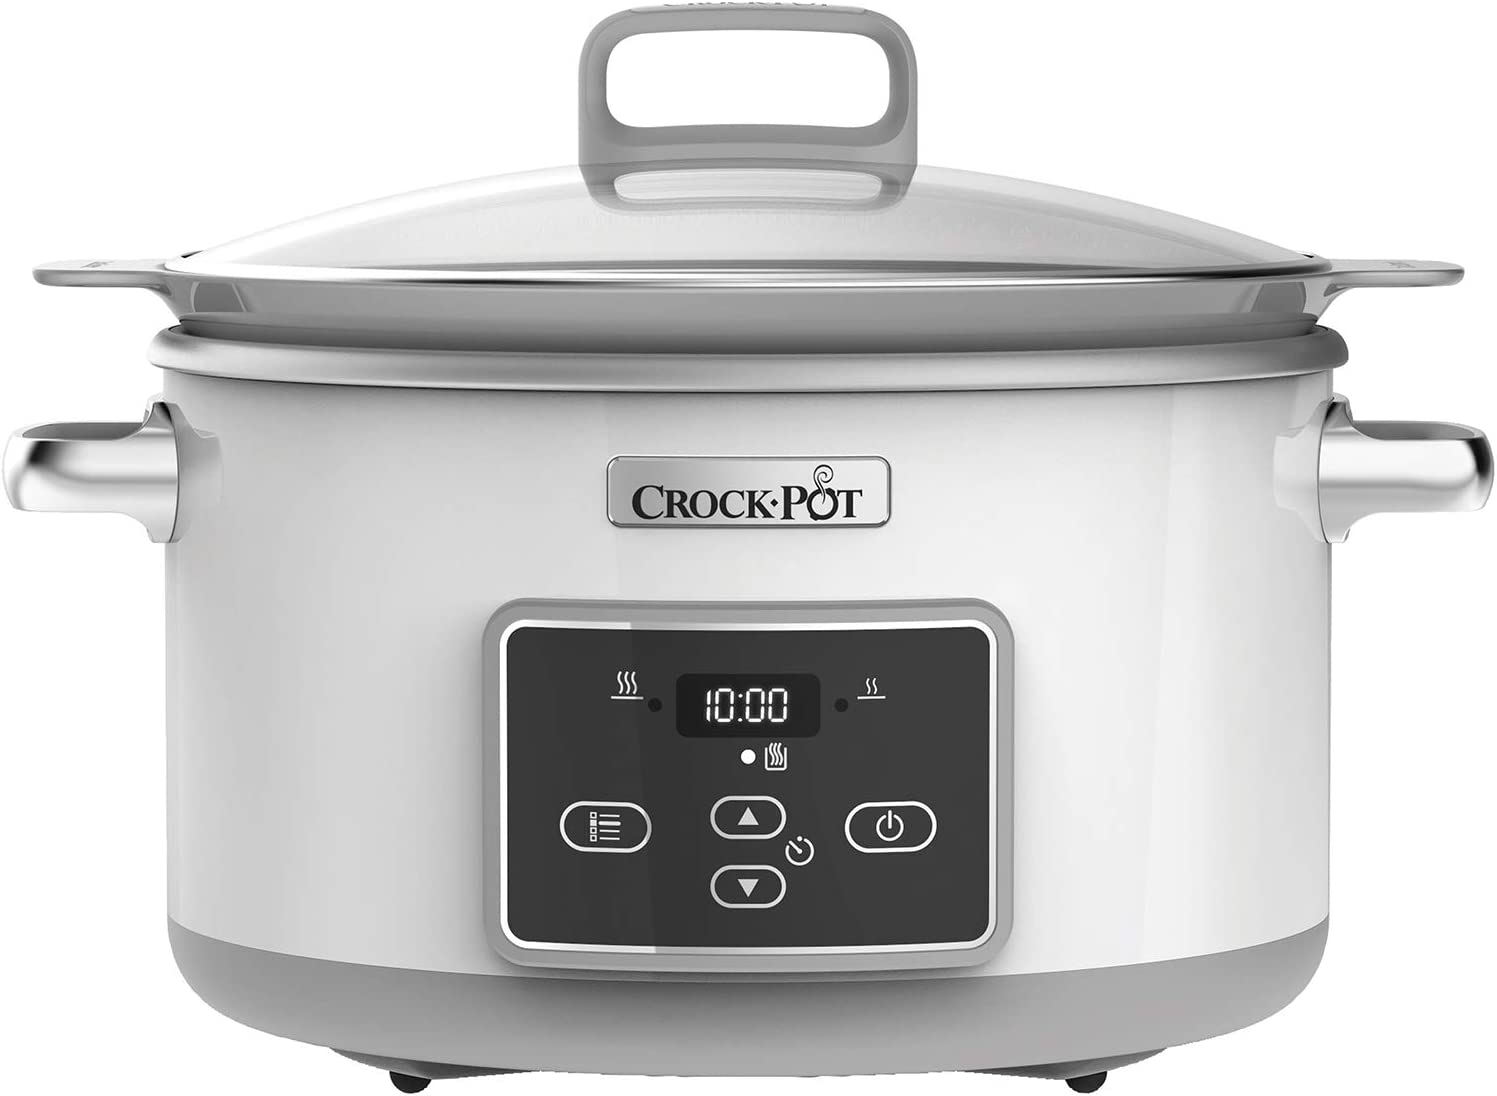 Crock-Pot Duraceramic CSC026X Olla de cocción lenta digital, recipiente compatible con fuego e inducción, 5 litros, Acero Inoxidable, Blanco: Amazon.es: Hogar